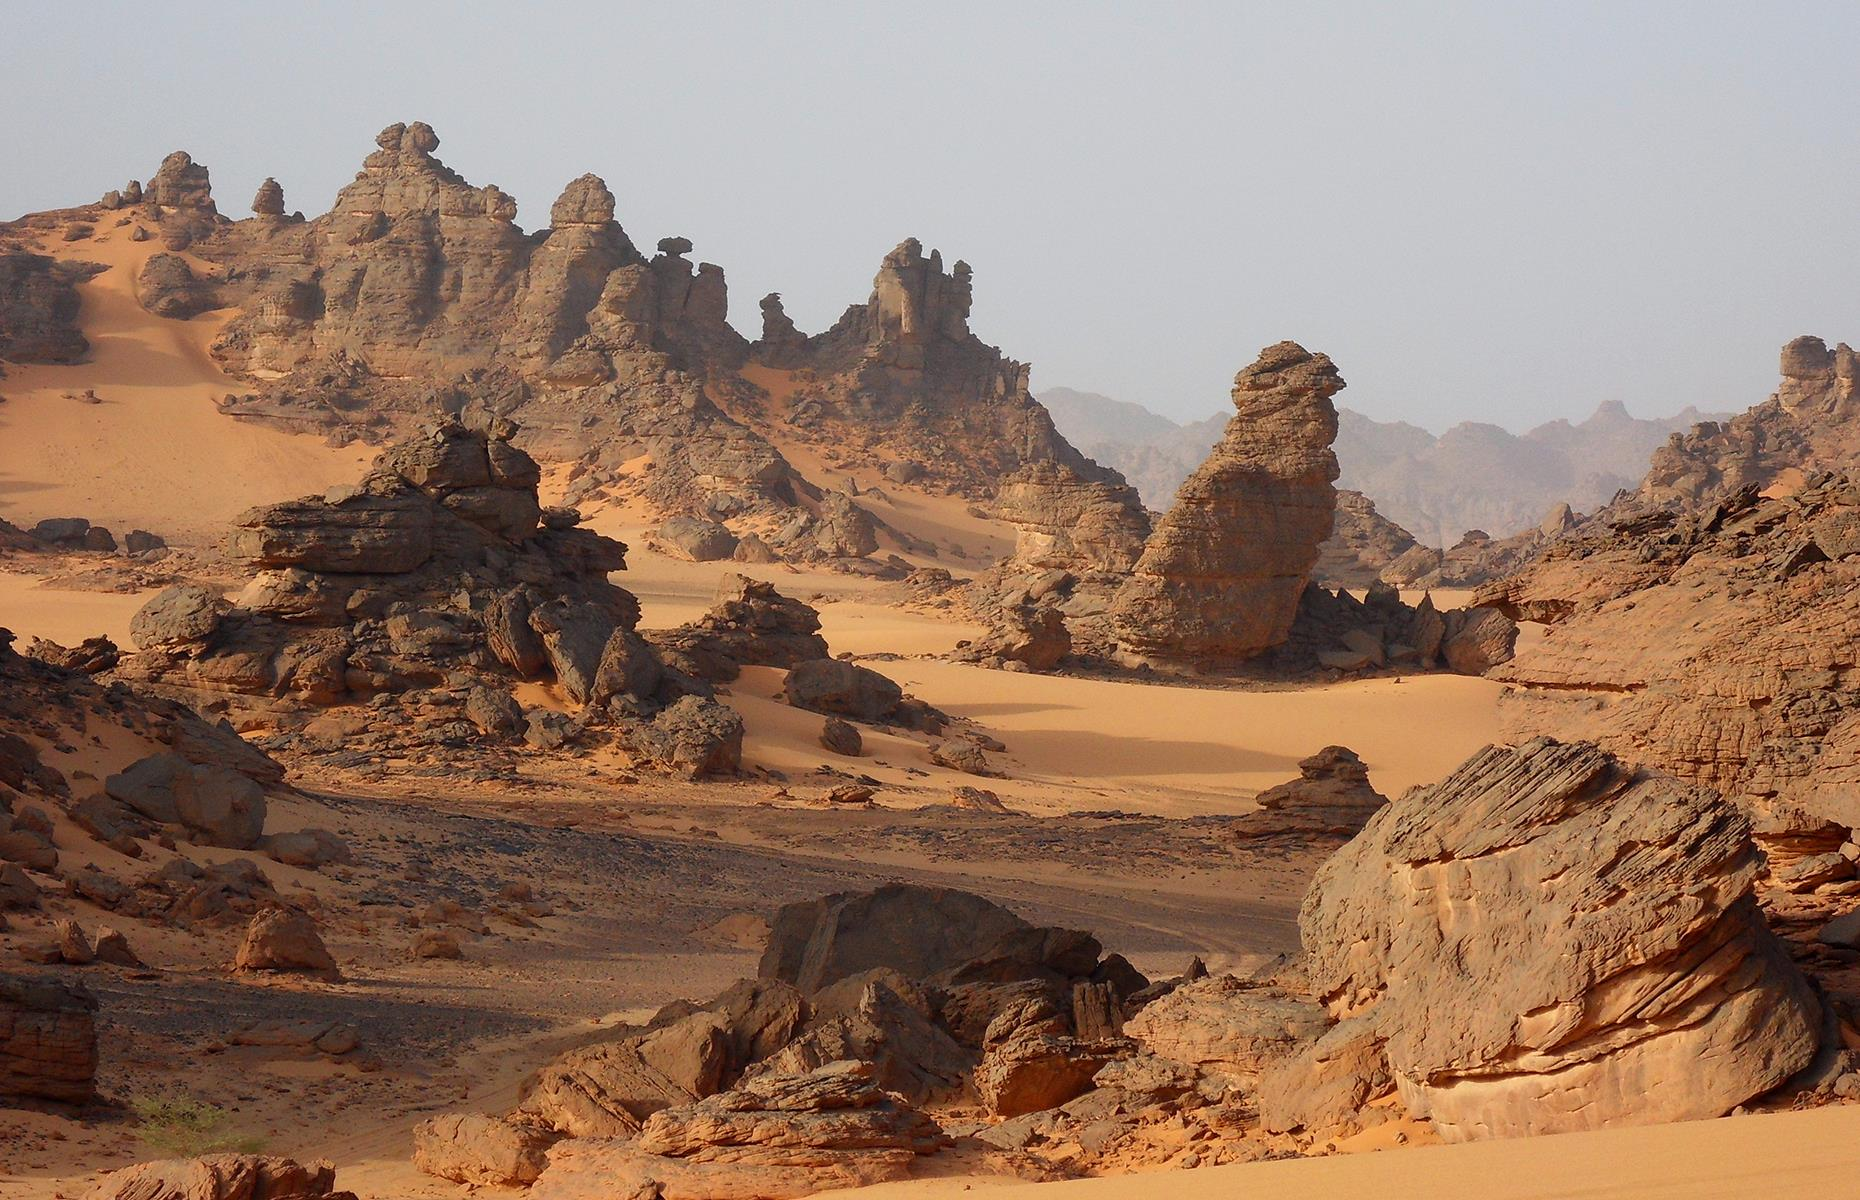 Slide 30 of 44: The Ennedi Plateau is essentially a natural bulwark, with towering rock buttresses, bridges and arches. Sandstone bluffs here soar above 4,756 feet (1,450m) and the stark, otherworldly landscape looks like something straight from a Star Wars film.